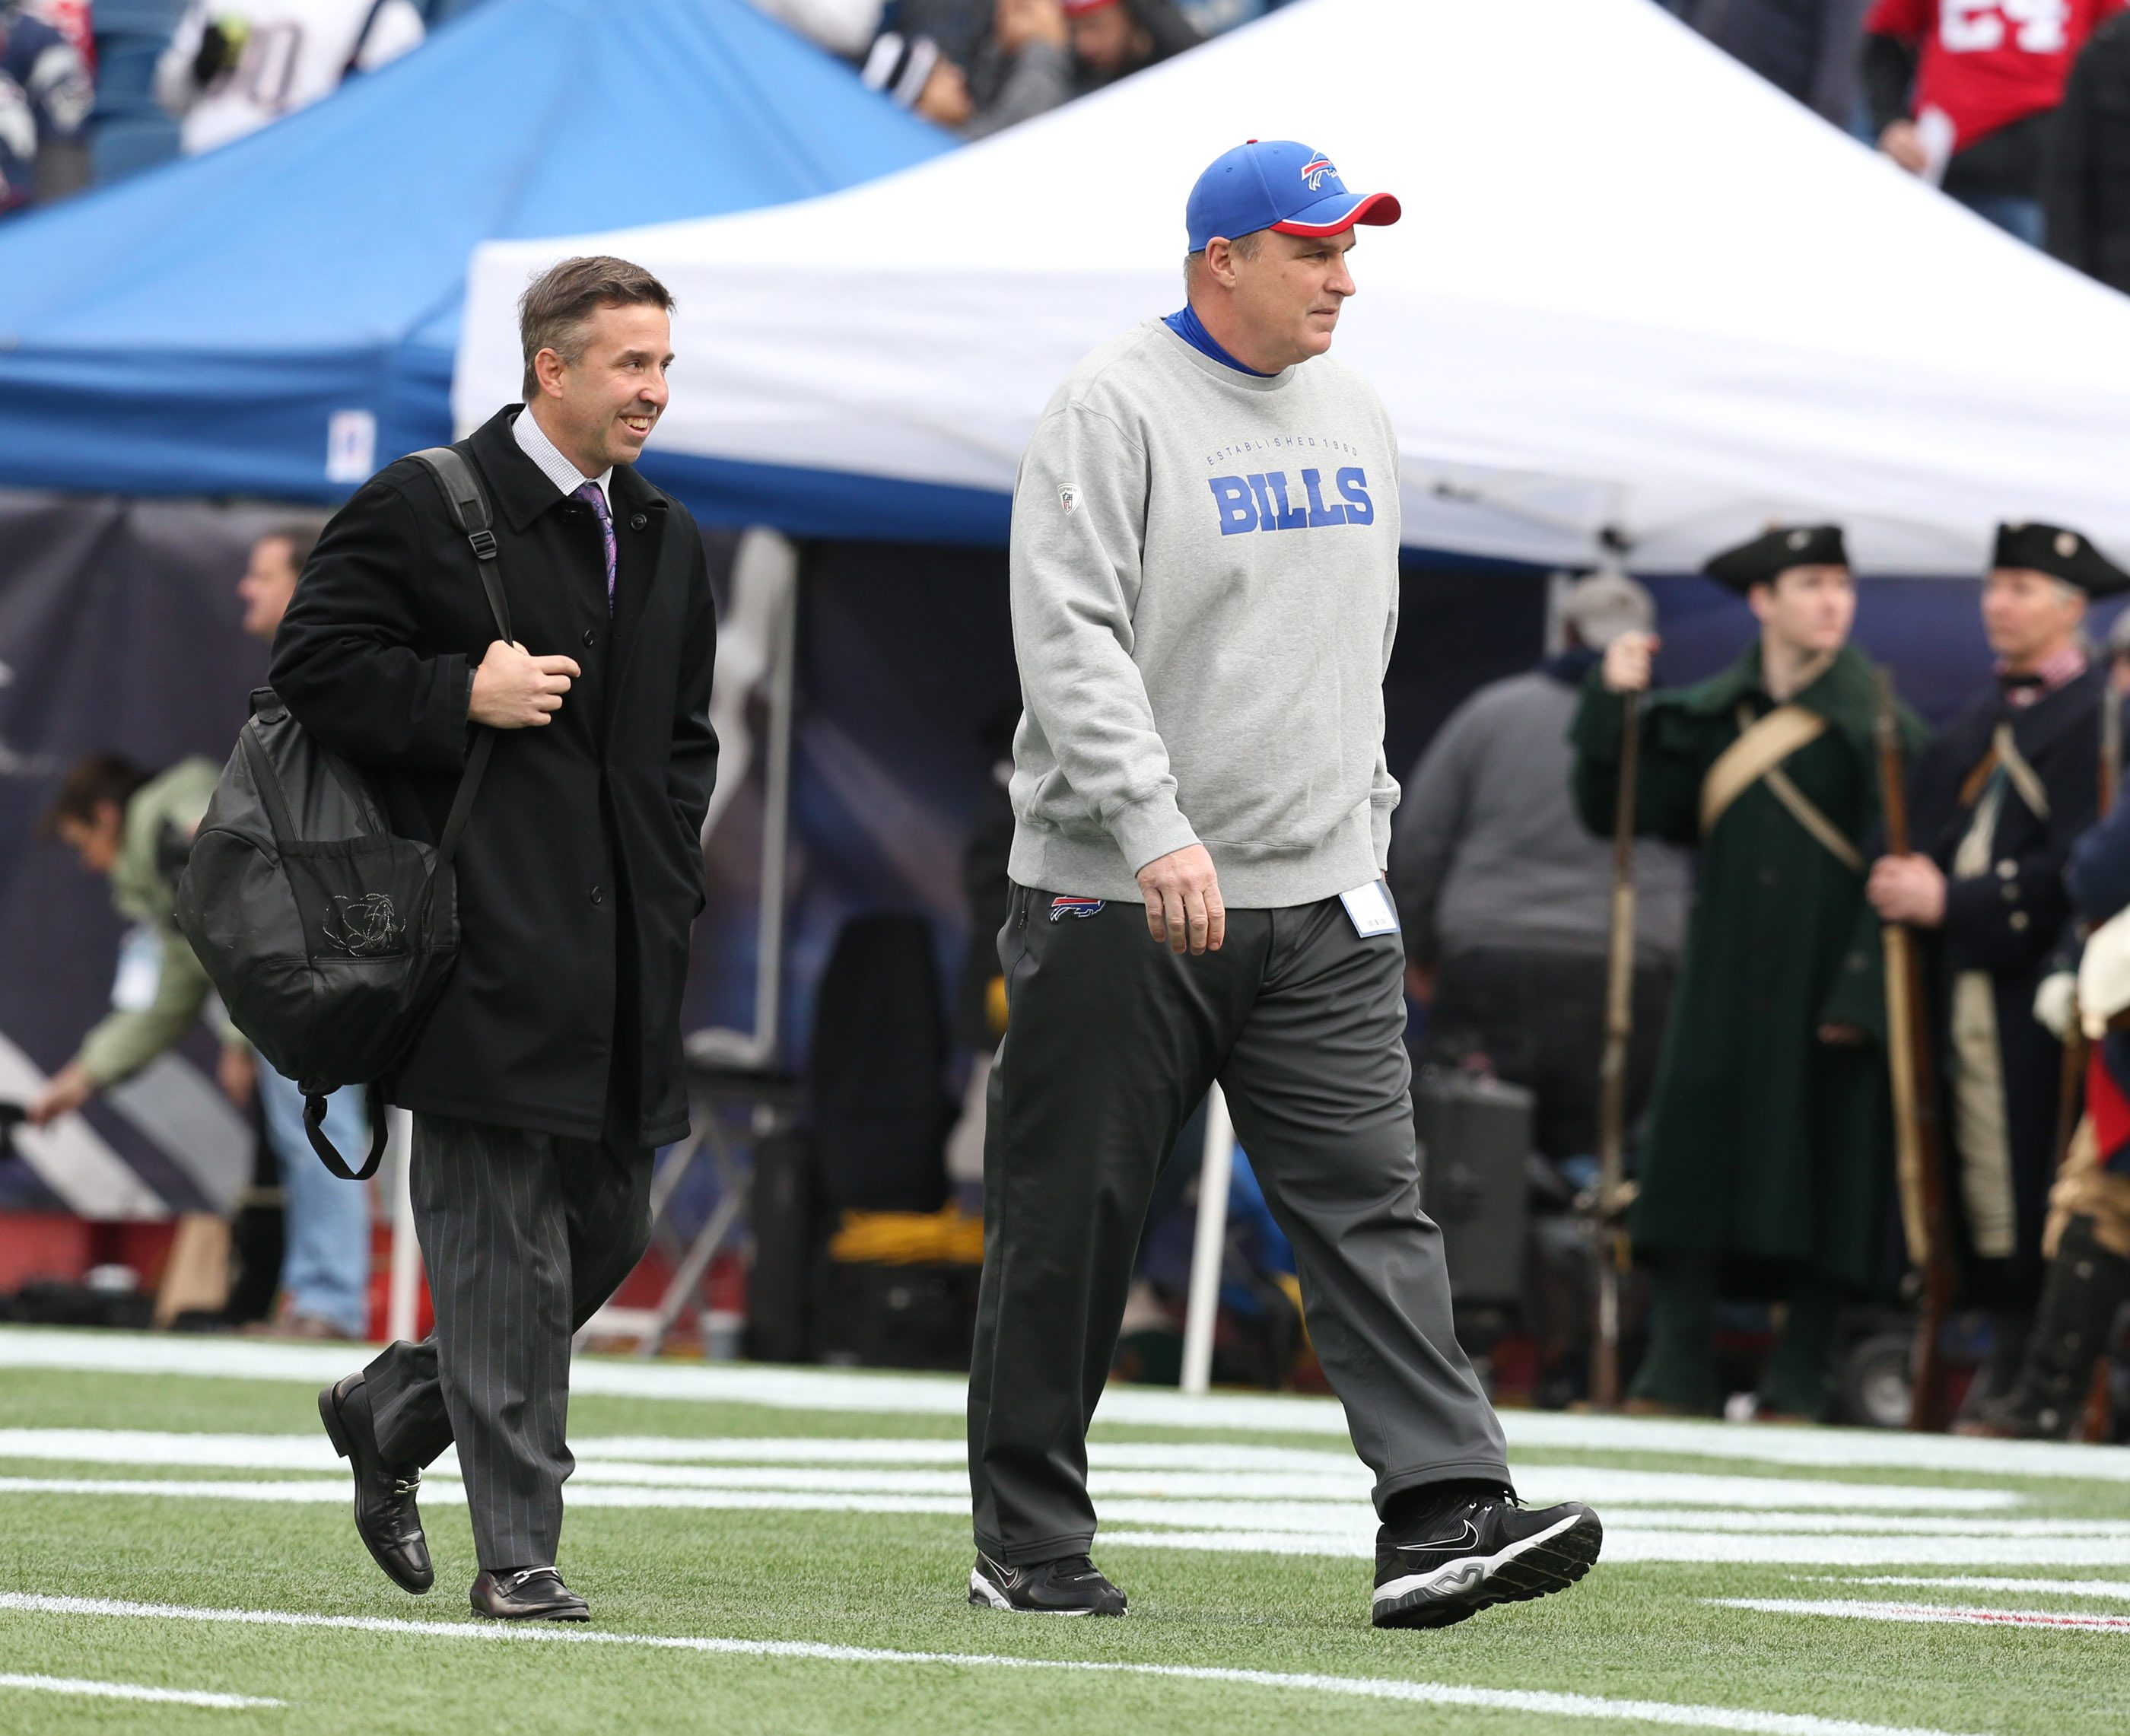 Buffalo Bills head coach Doug Marrone (right) and Russ Brandon walk onto the field prior to today's game.  (James P. McCoy/Buffalo News)